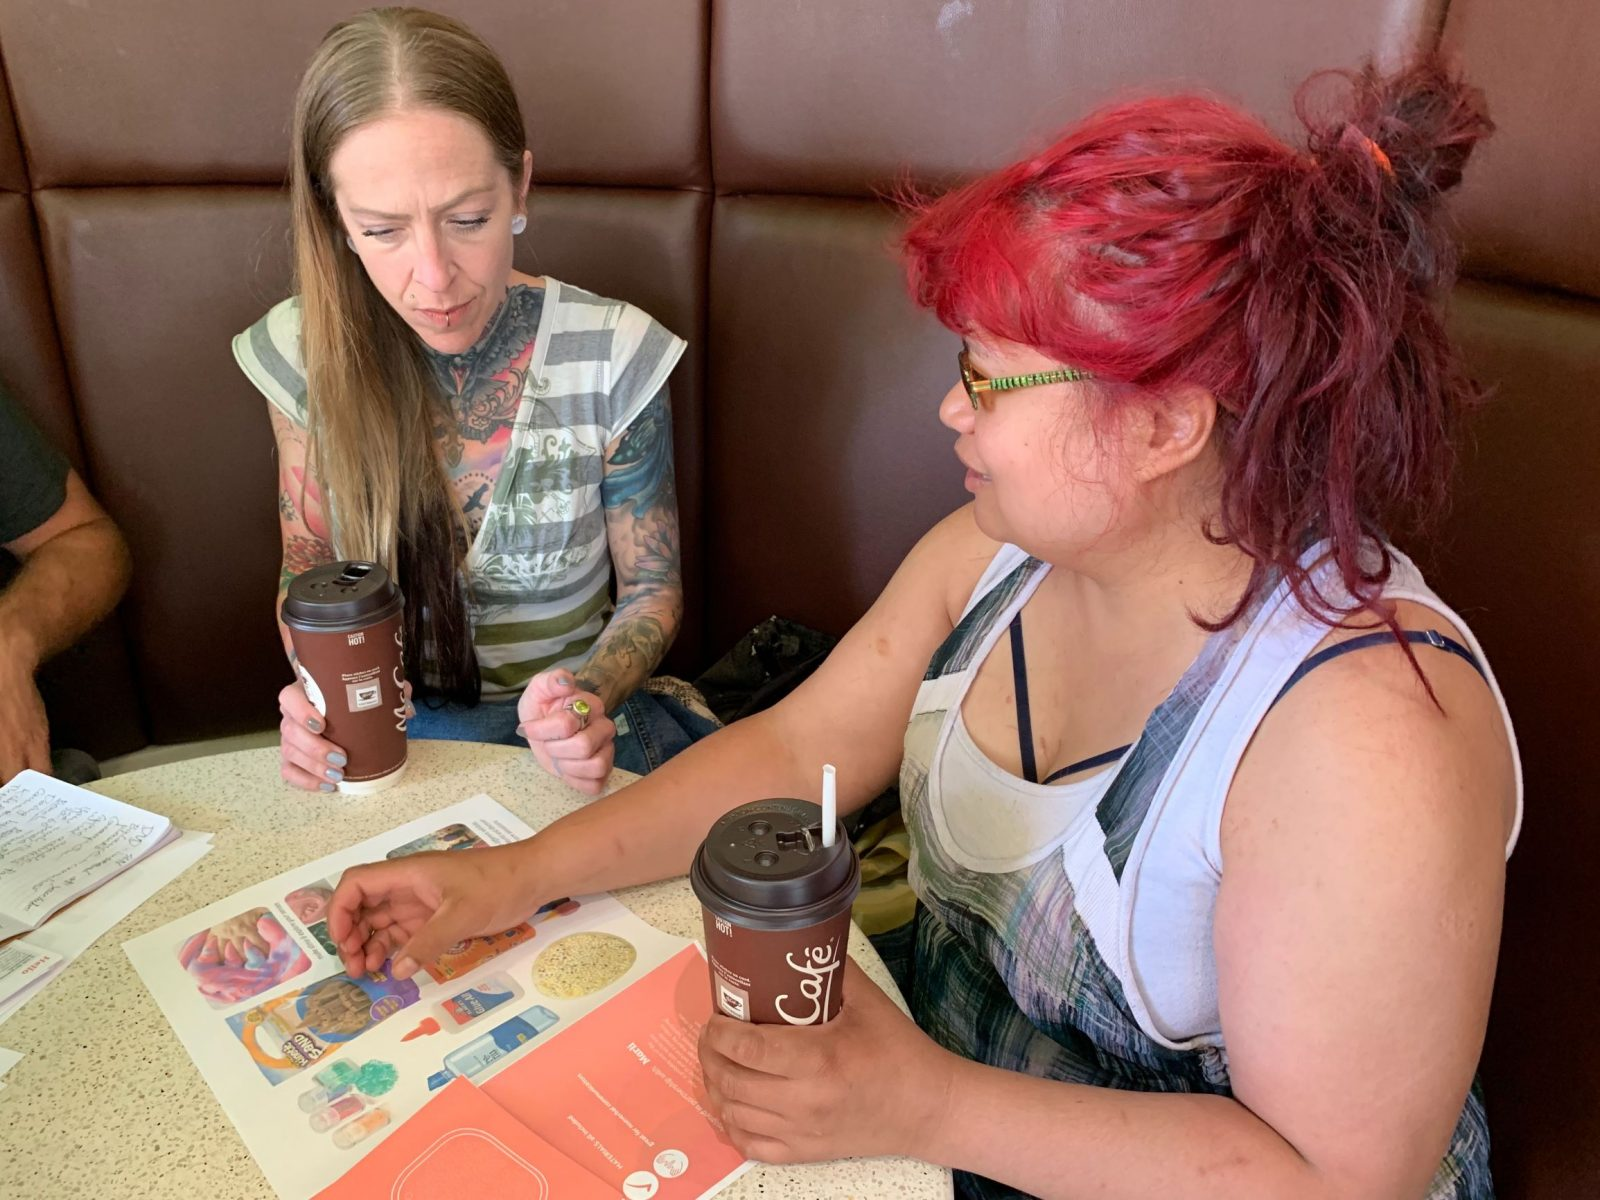 Two women sitting in a booth, one with long, straight blond hair, tattoos on her exposed neck, collar bone, and upper arms. The other has dyed bright red hair, and is wearing overalls. Both are holding a paper McDonald's coffee cup in their hands, resting on the table. They are looking down at colourful paper materials.